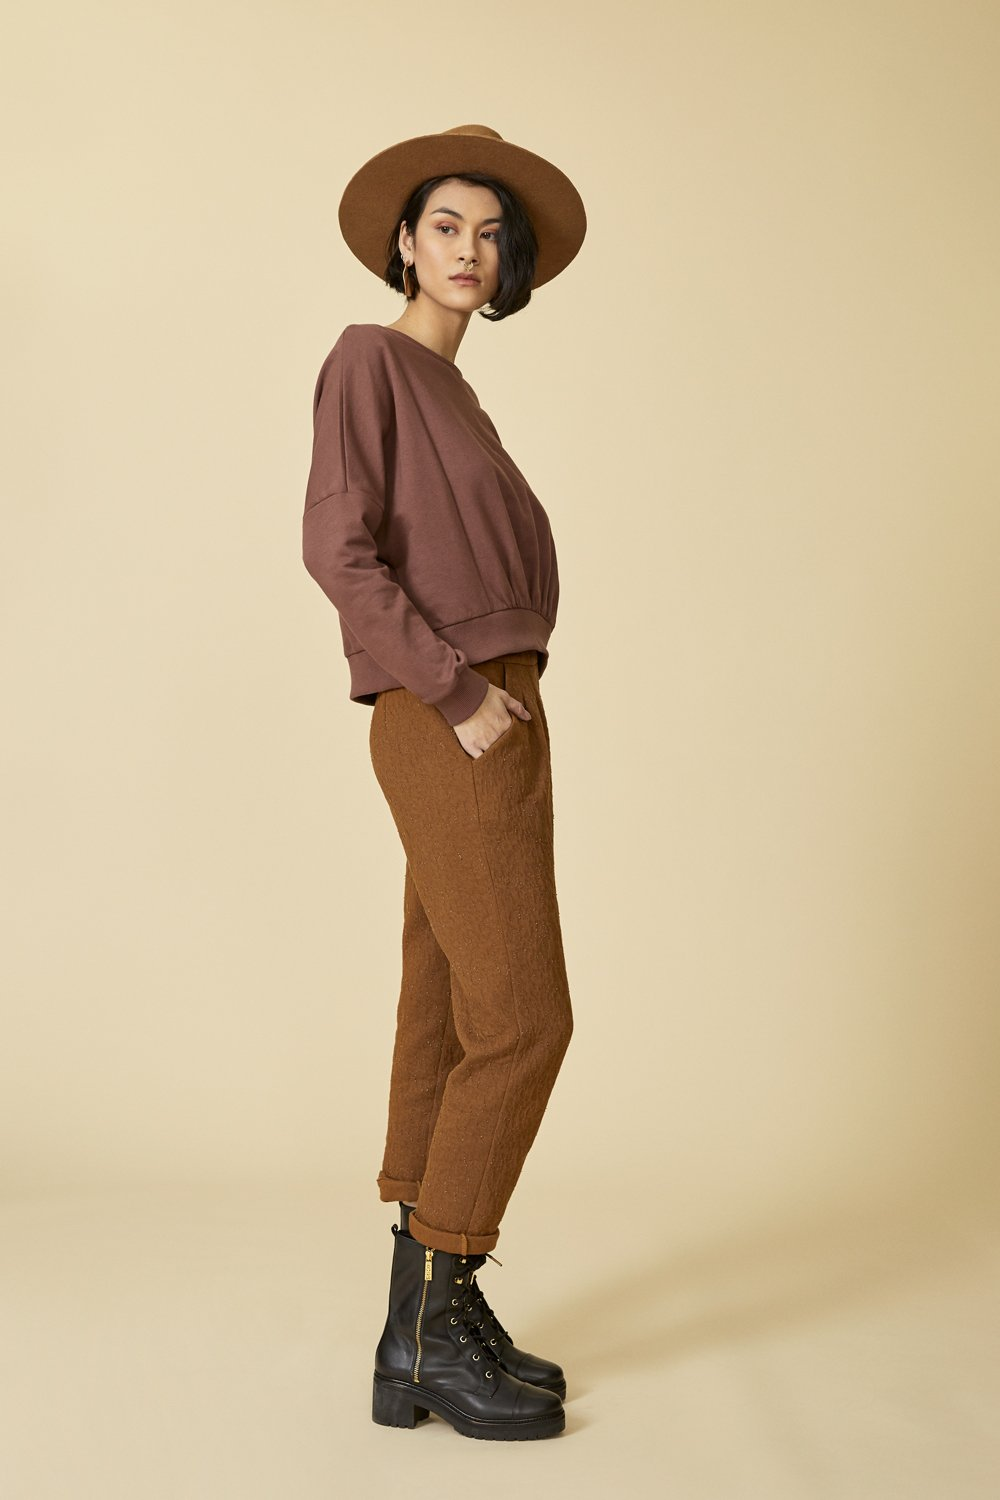 COKLUCH Autel Pants in Cinnamon Crinkle (side view) FW2020/2021